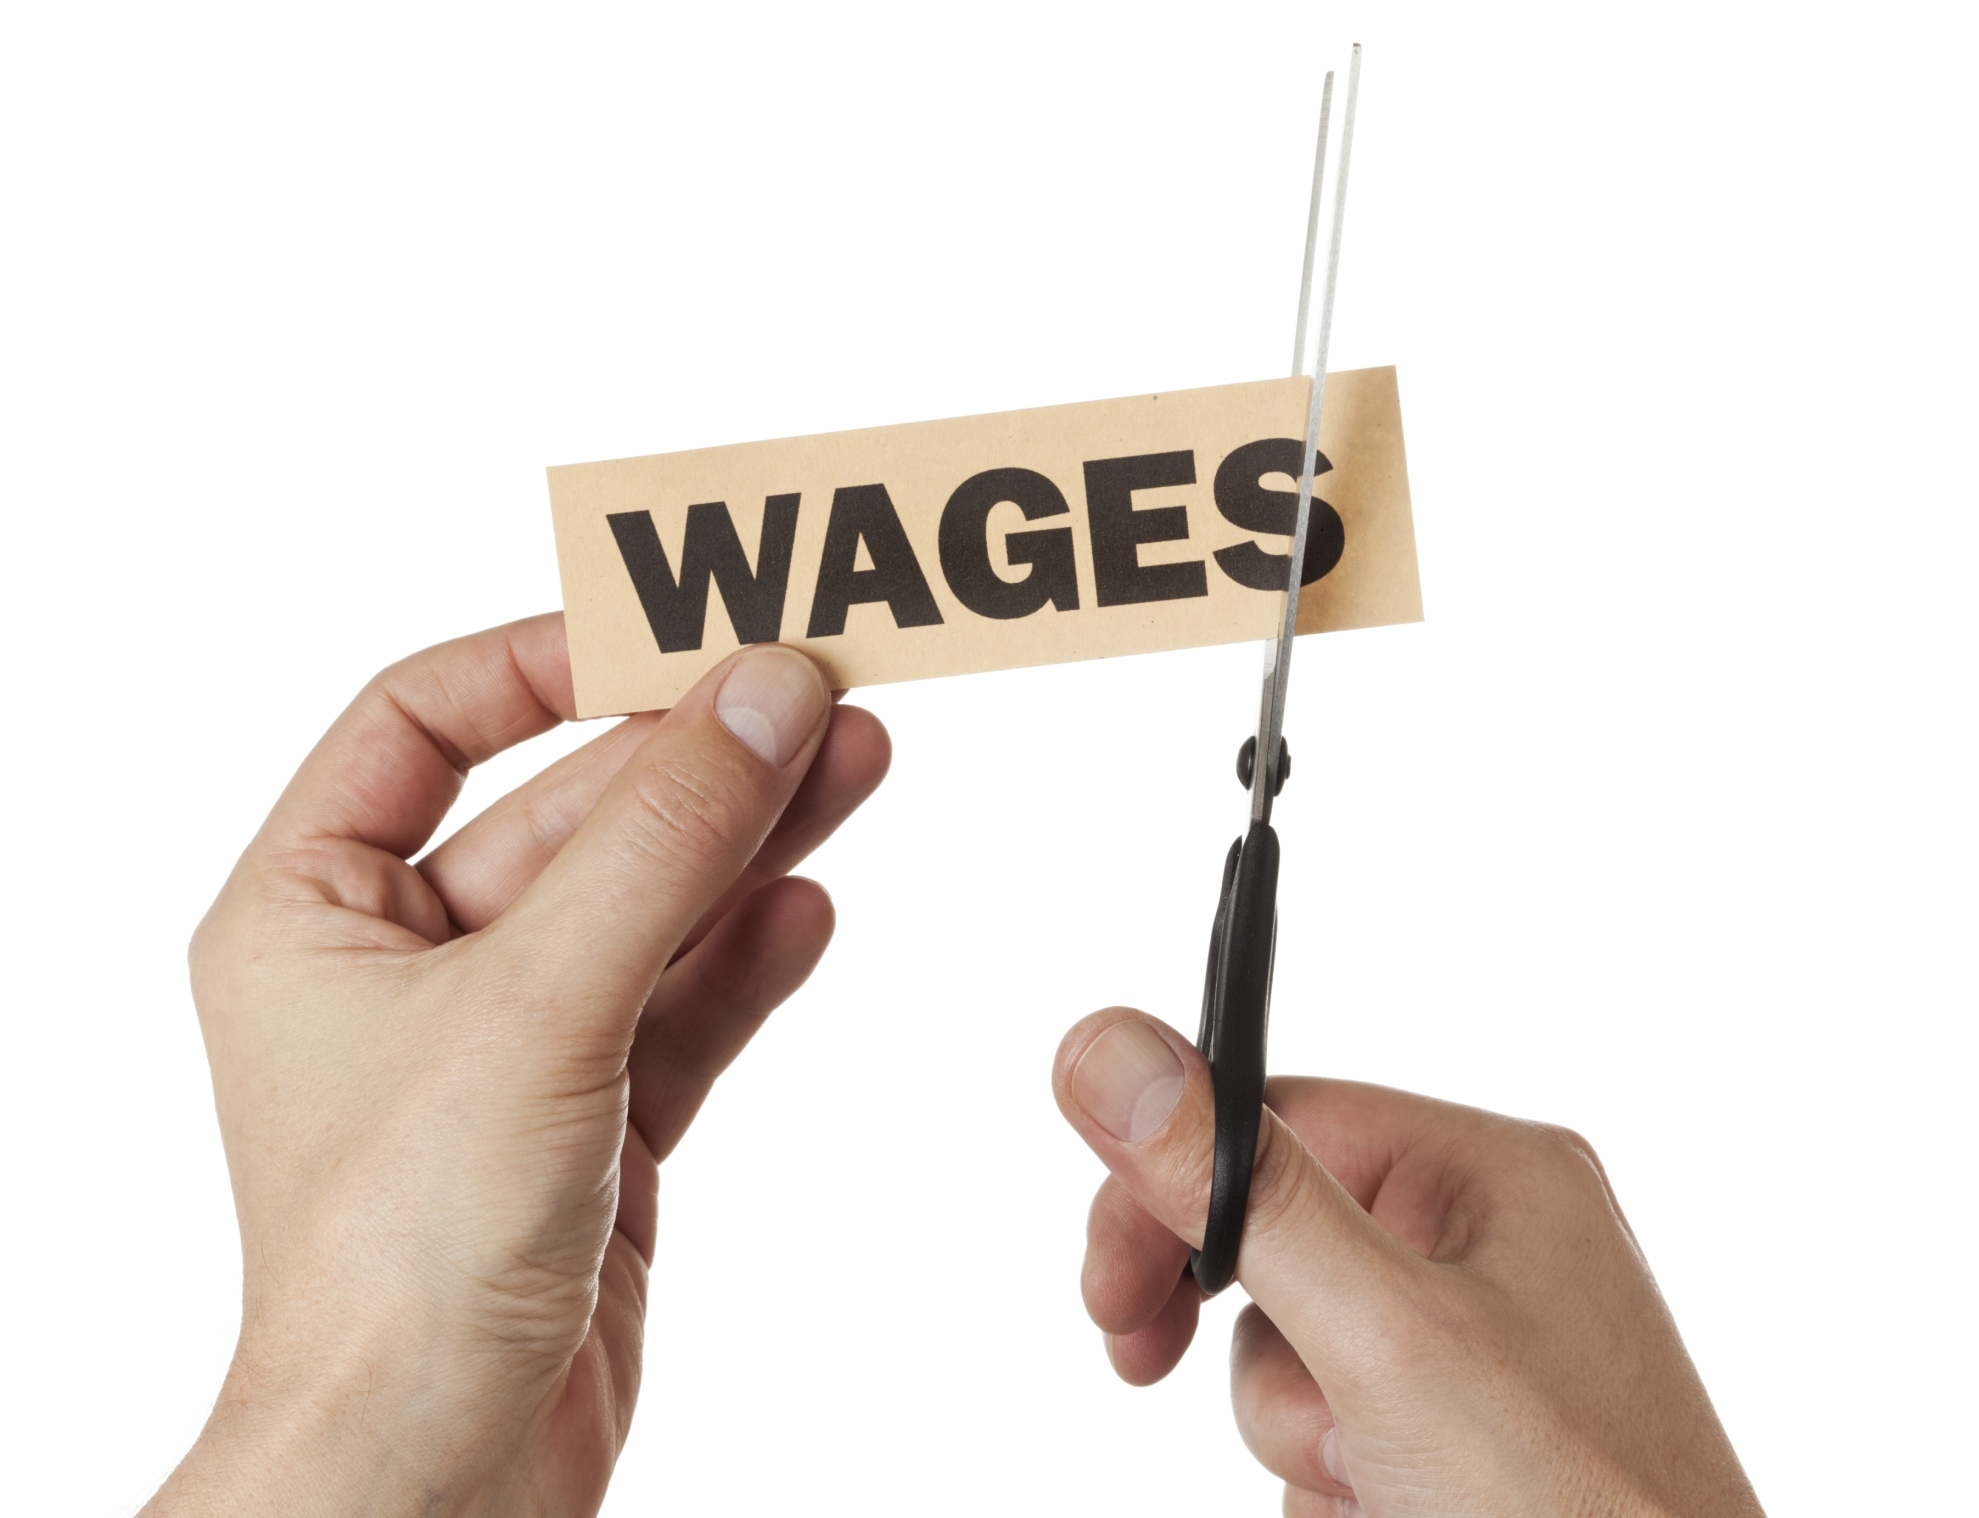 """This image shows a hand cutting the """"s"""" letter from the word """"wages."""""""